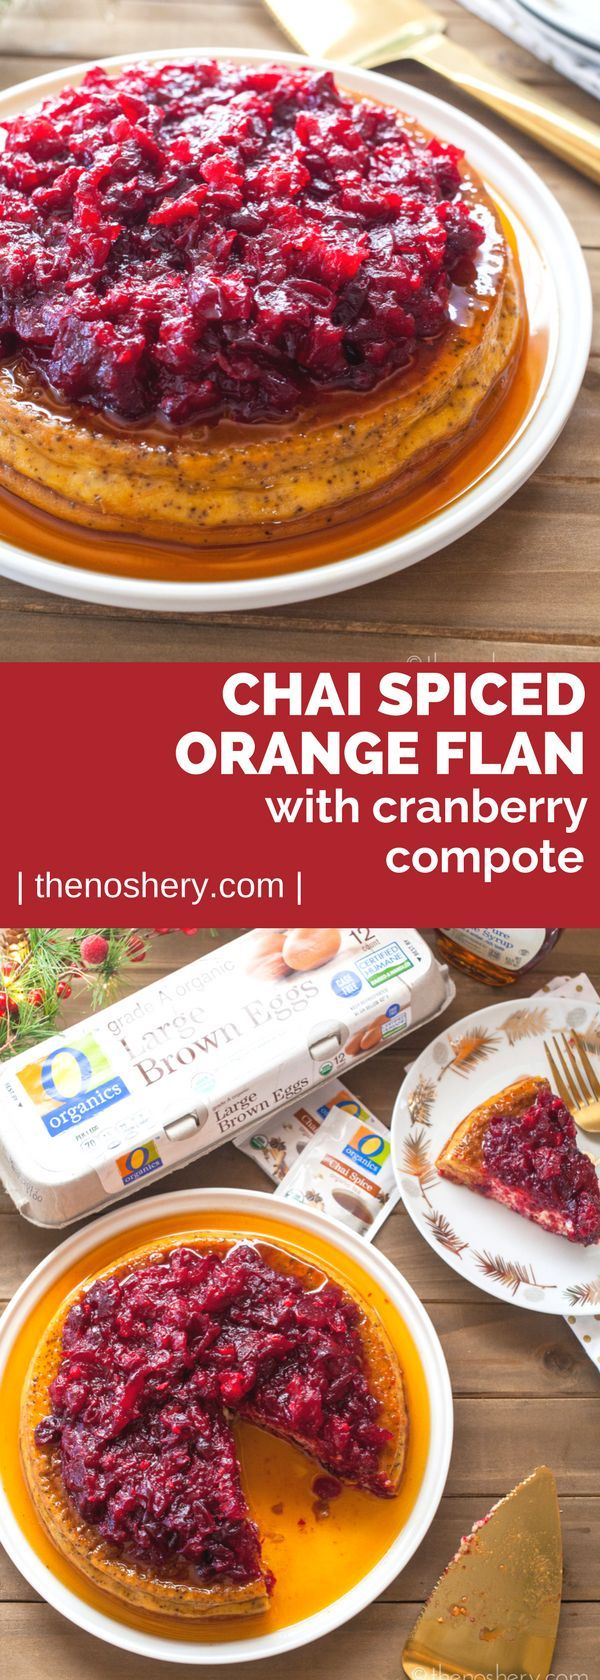 Chai Spiced Orange Flan With Cranberry Compote Recipe Cranberry Compote Chai Spice Food Snob